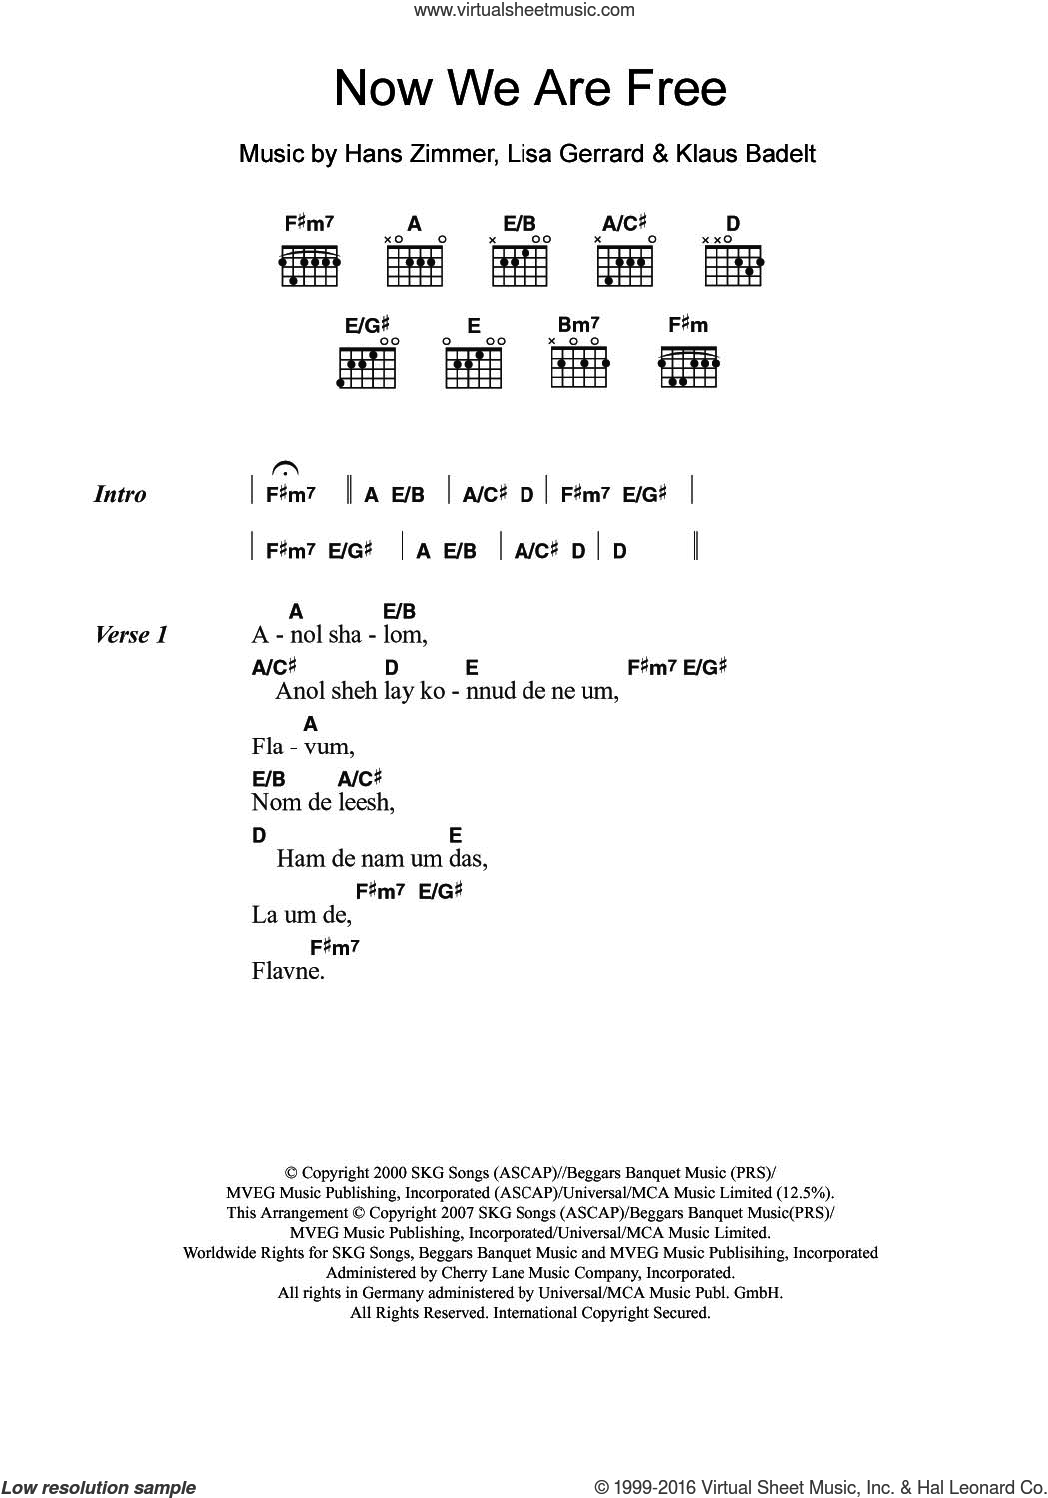 Now We Are Free (from Gladiator) sheet music for guitar (chords) by Lisa Gerrard, Hans Zimmer and Klaus Badelt, intermediate. Score Image Preview.